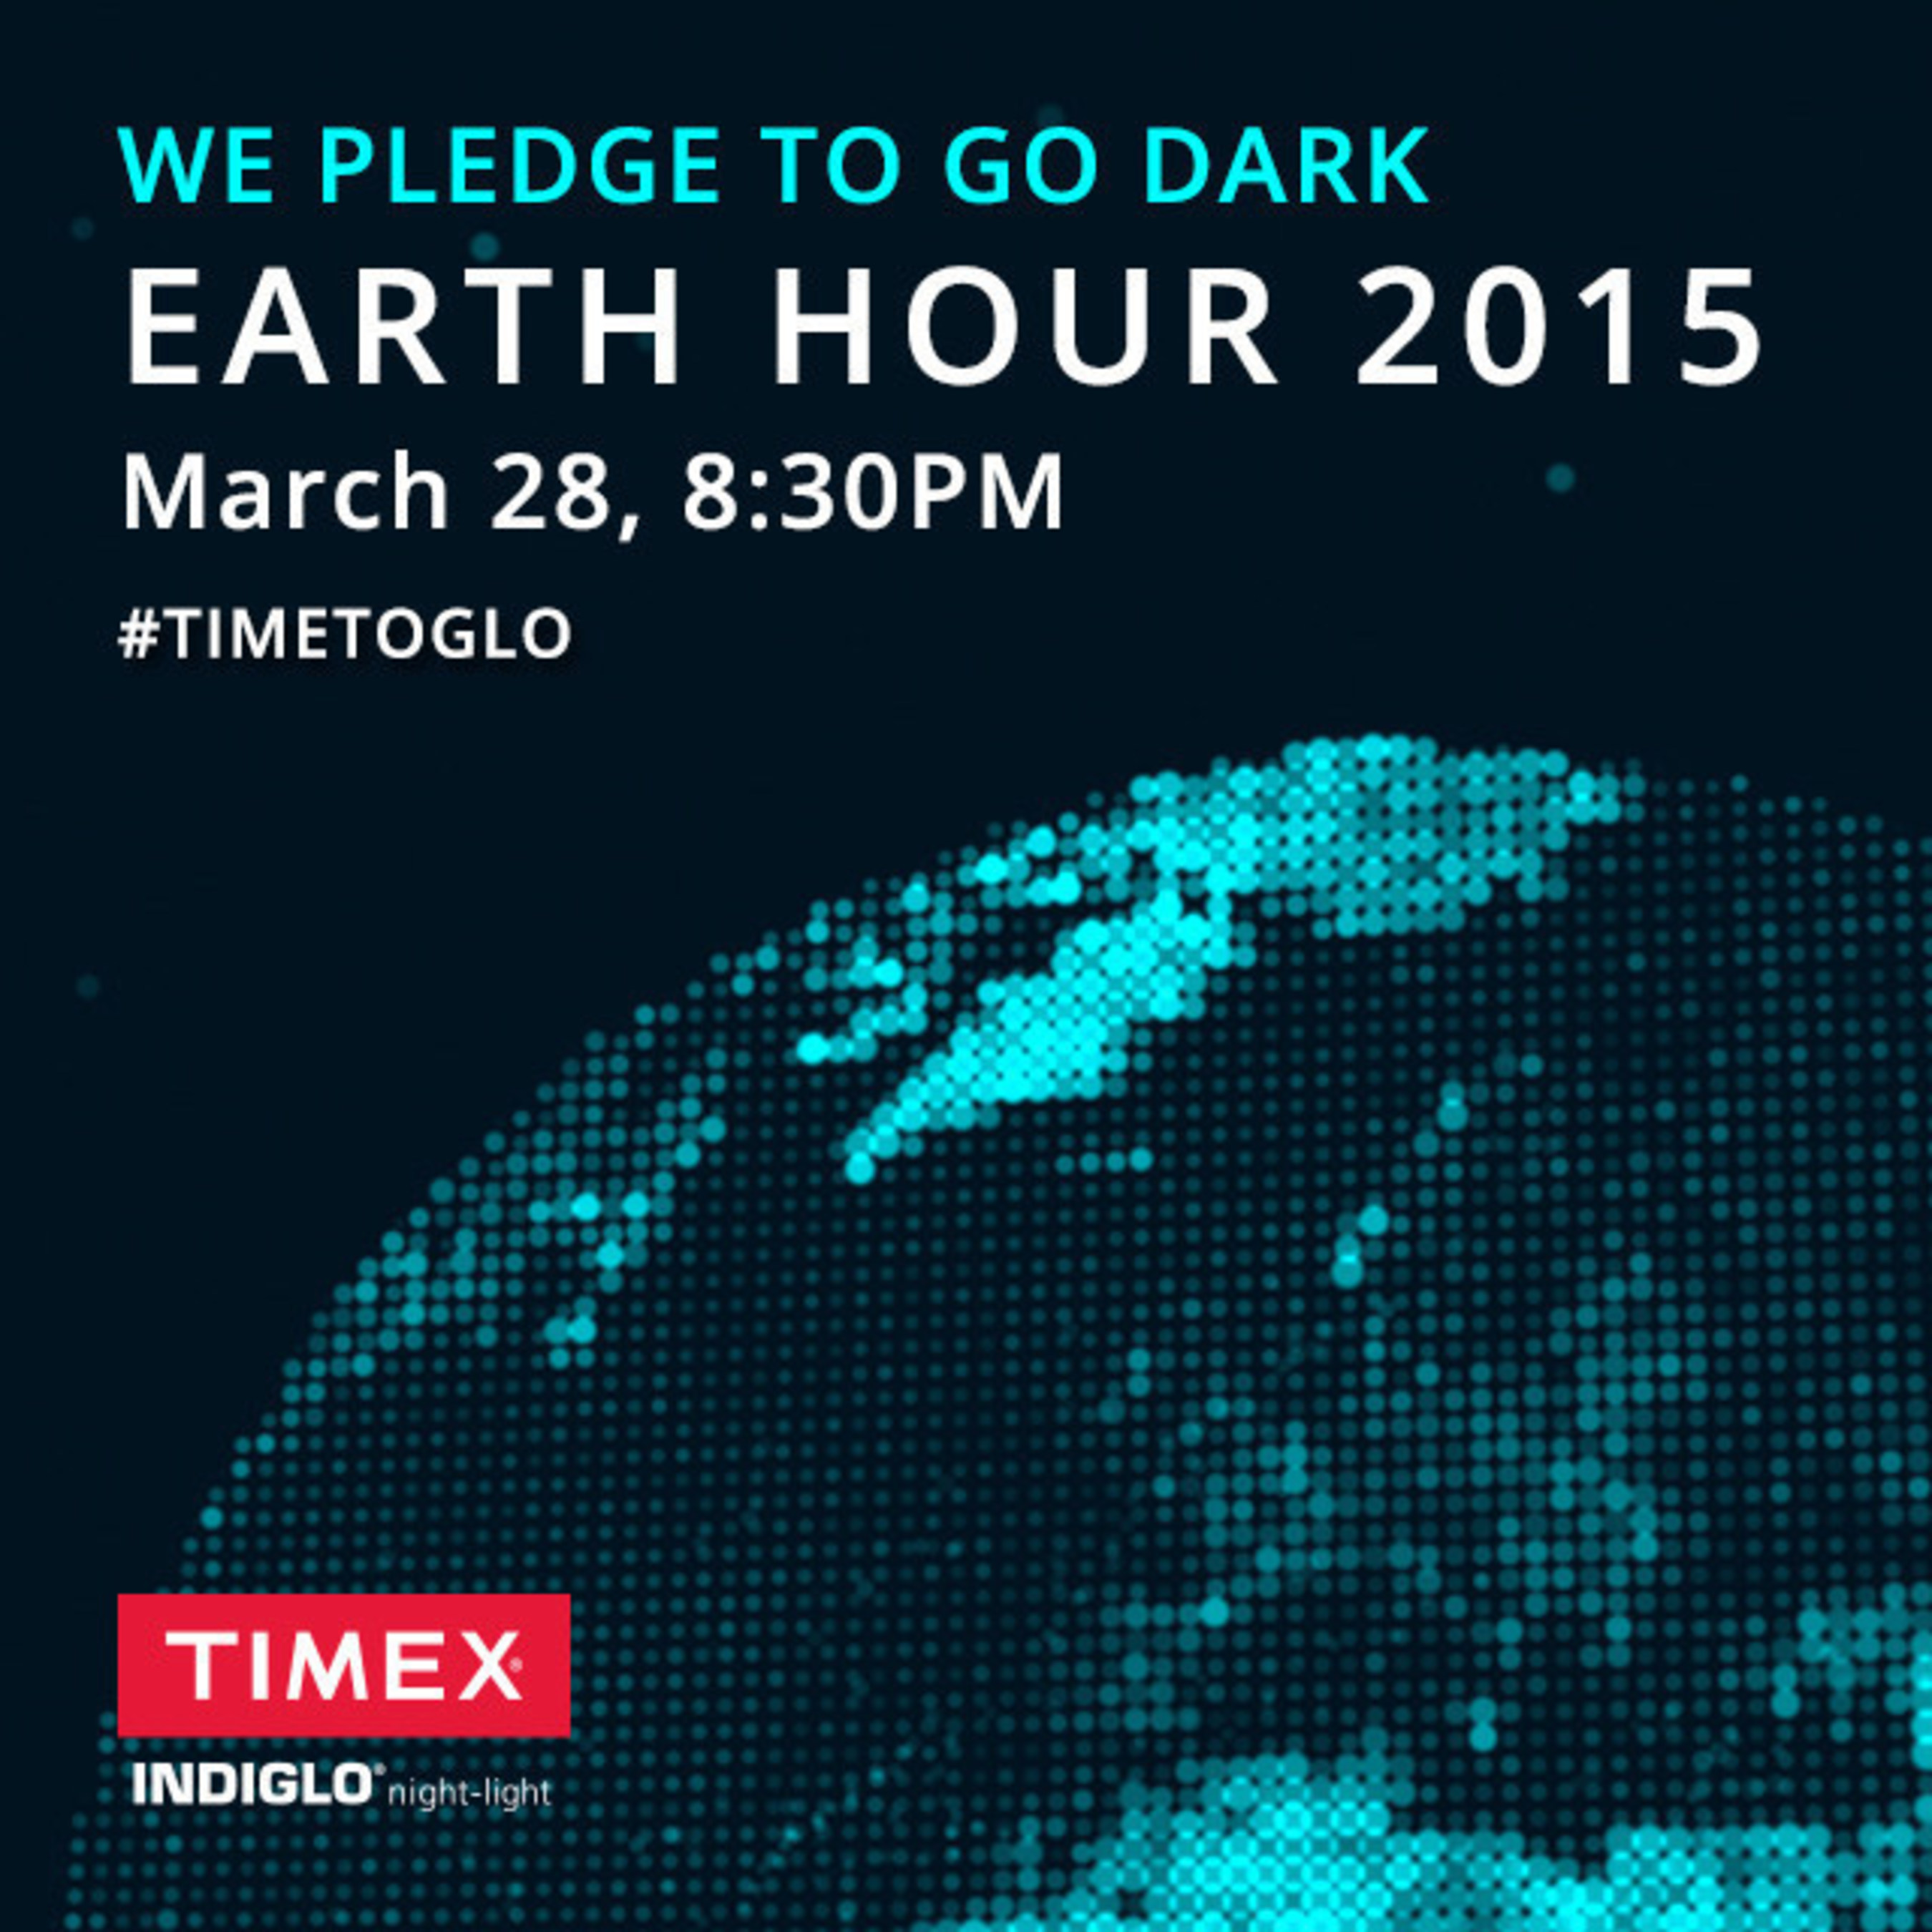 Timex Lights Up Earth Hour 2015 With INDIGLOR Night Light